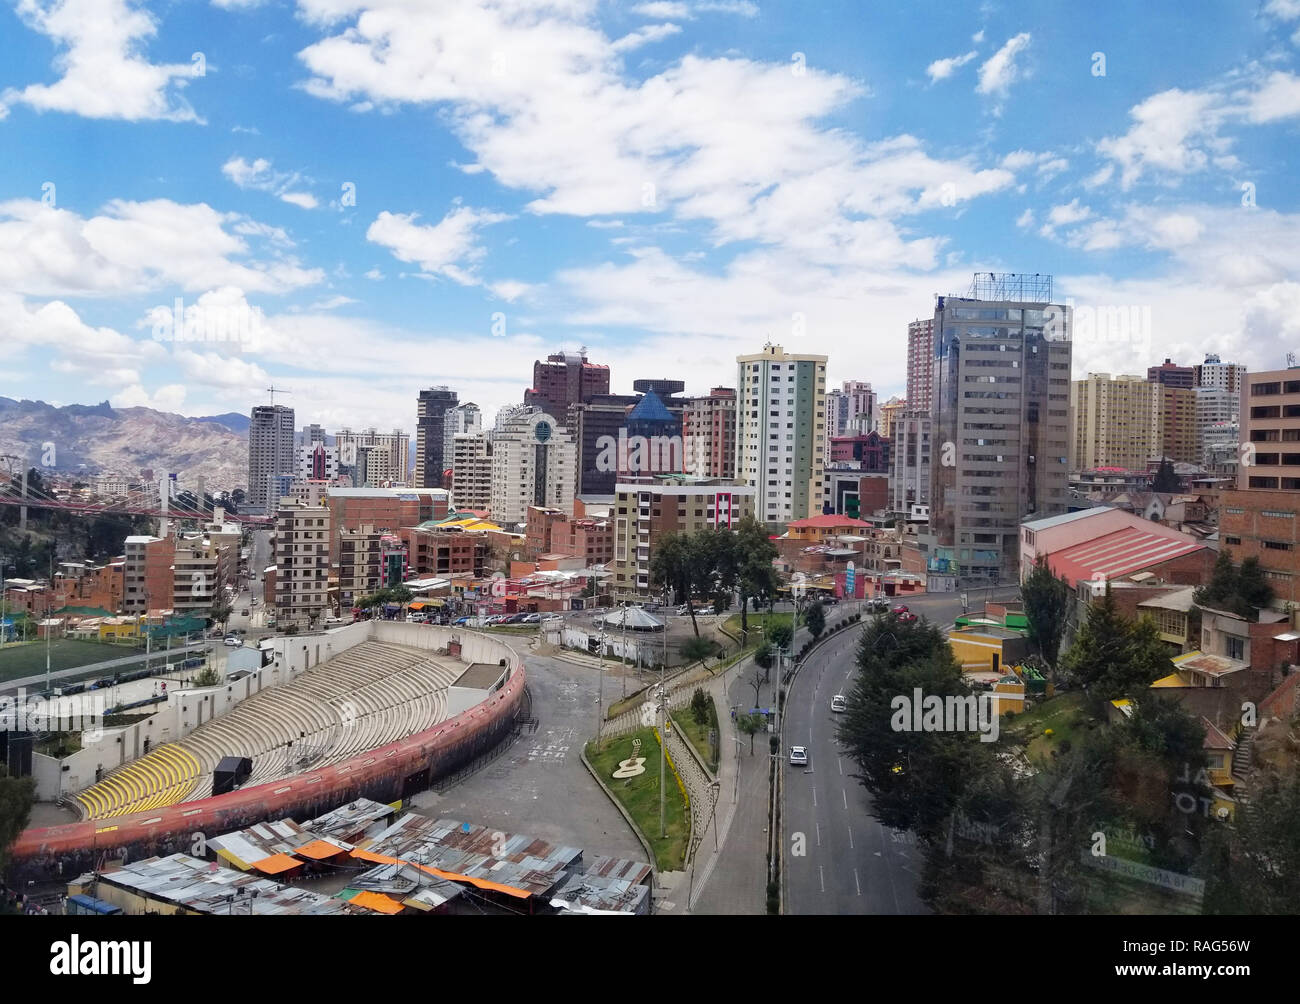 Aerial view of La Paz, Bolivia. City center. South America Stock Photo